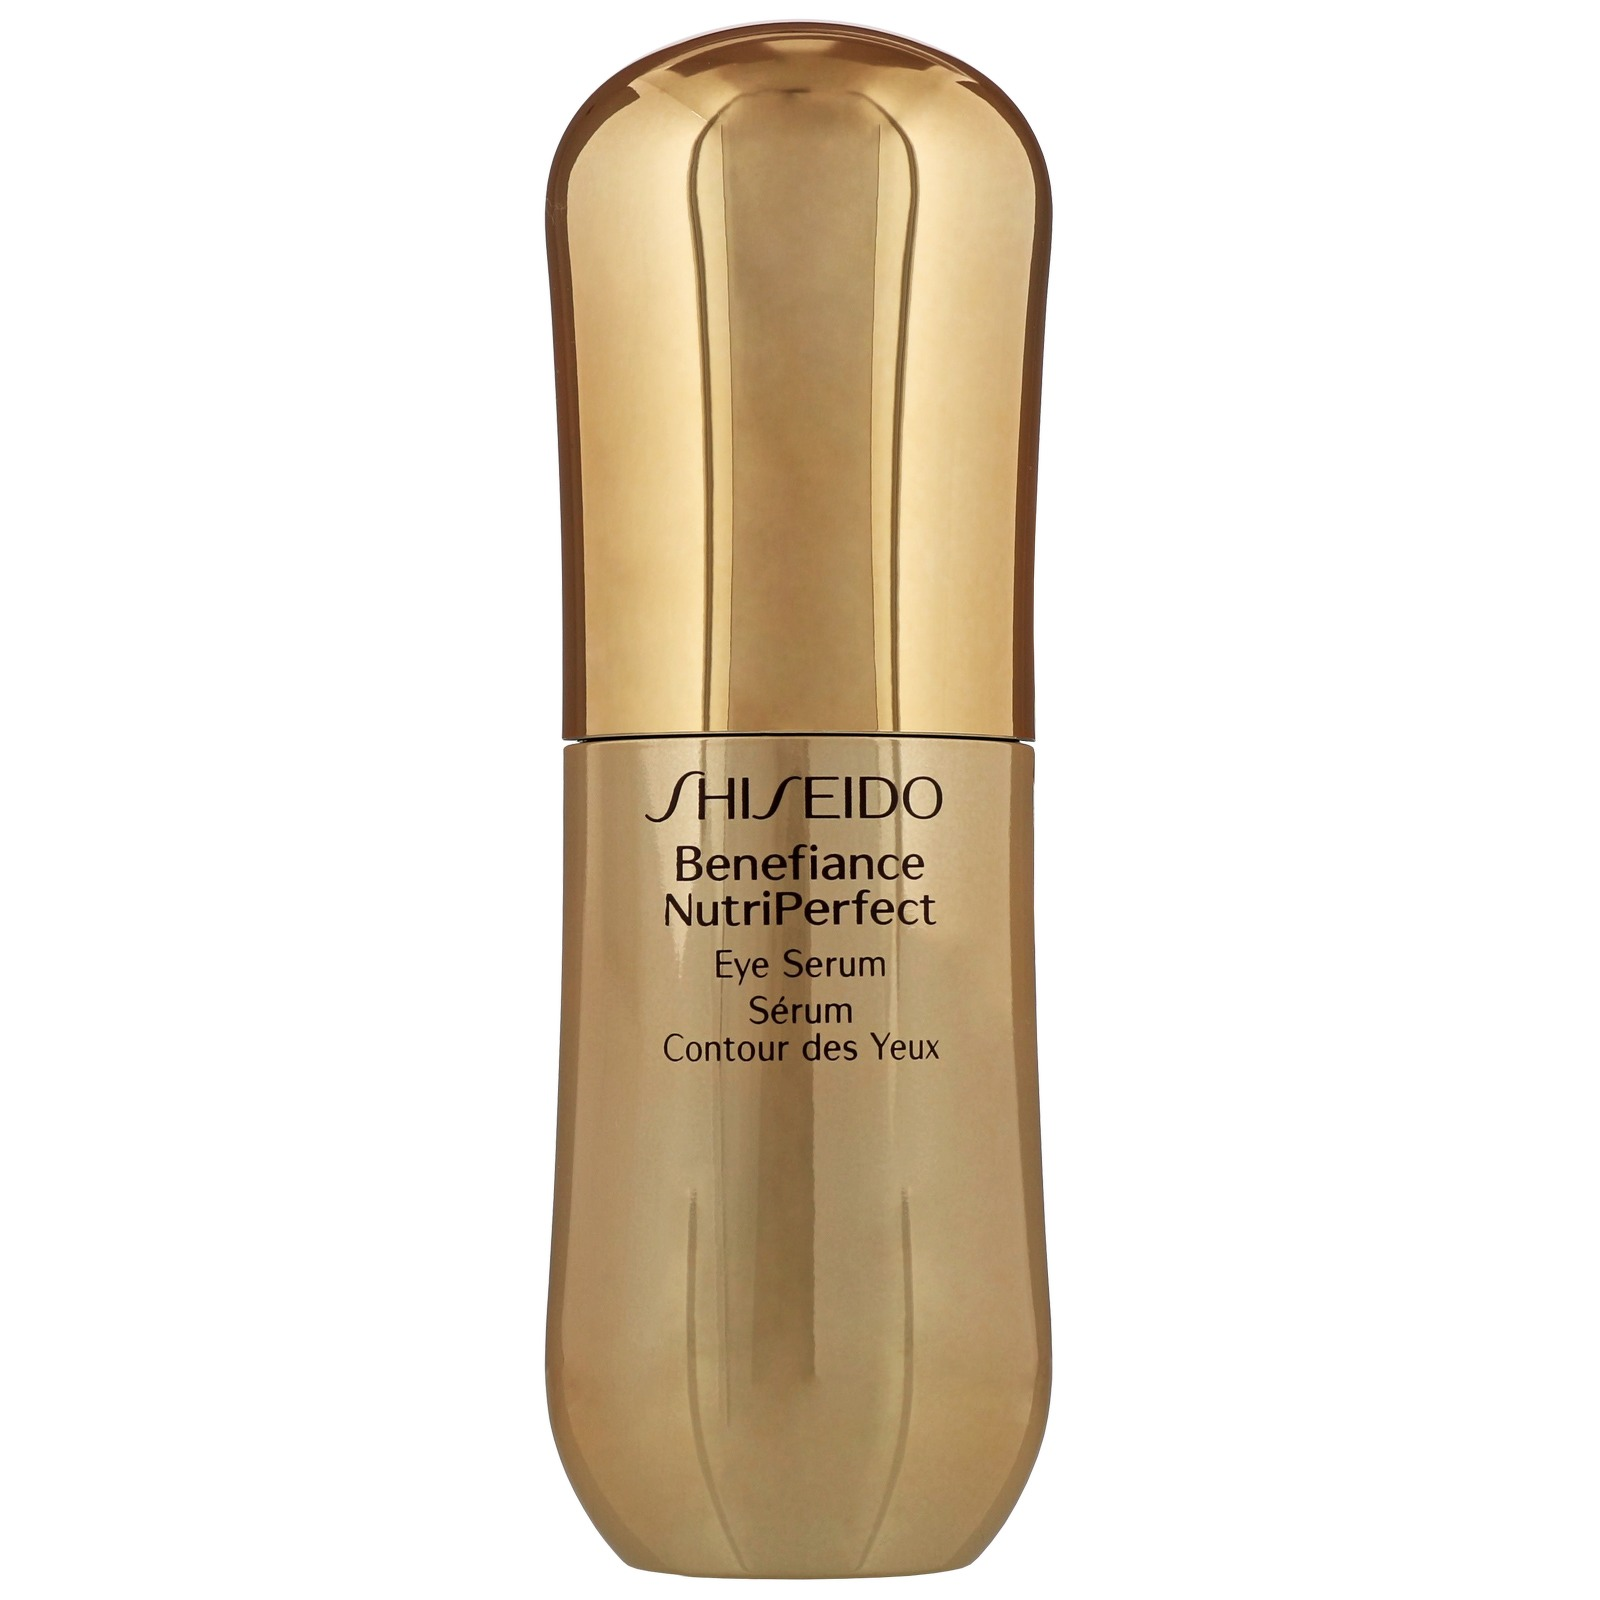 Shiseido Benefiance NutriPerfect Eye Serum 15ml/0,53 oz.